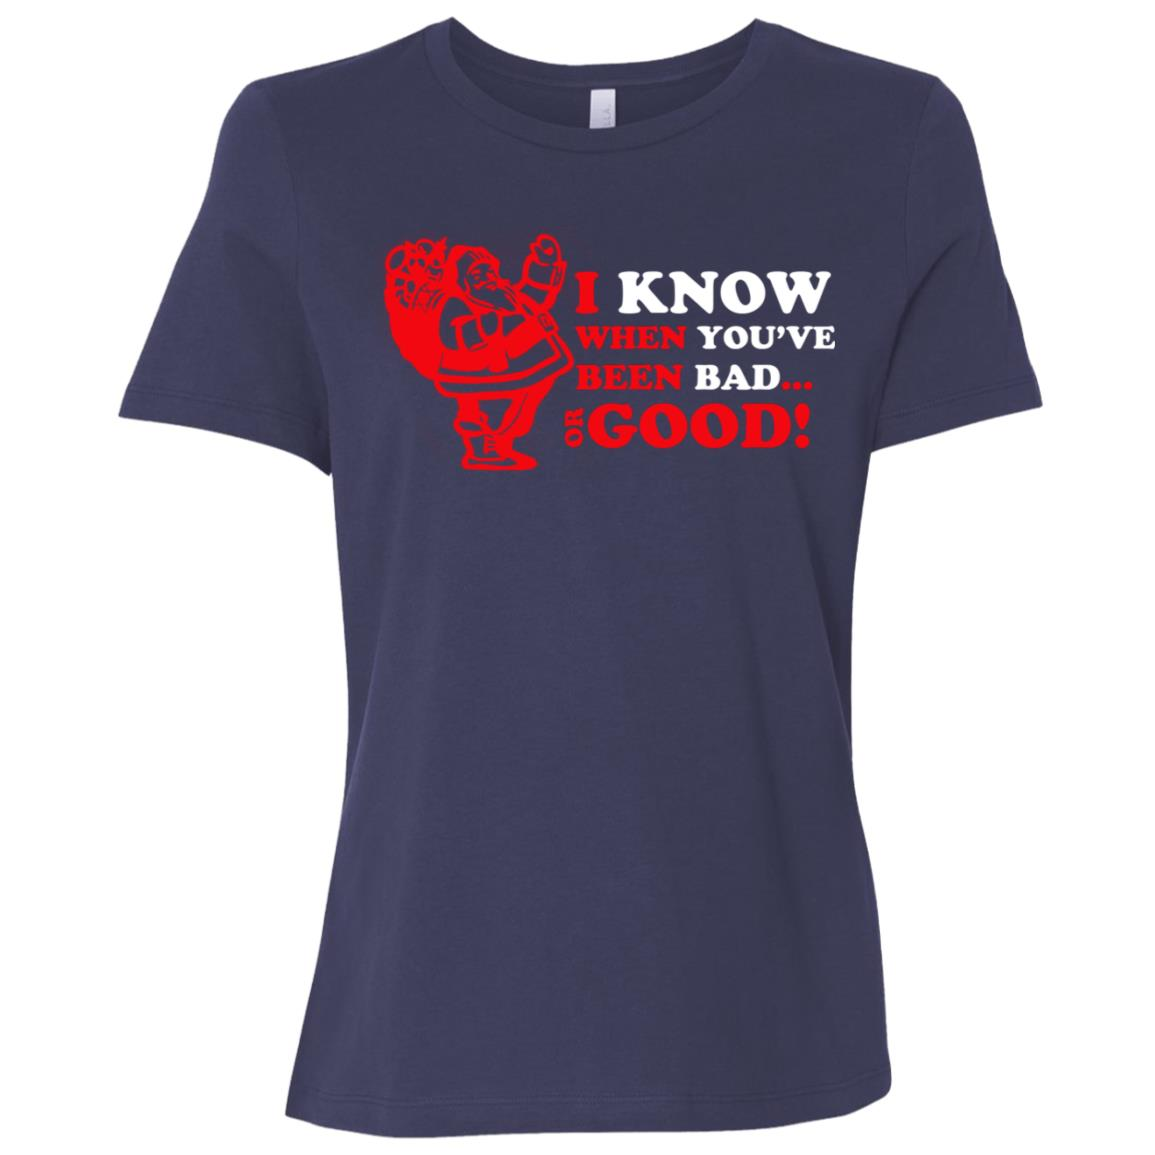 I know when you ve been bad or good s Women Short Sleeve T-Shirt